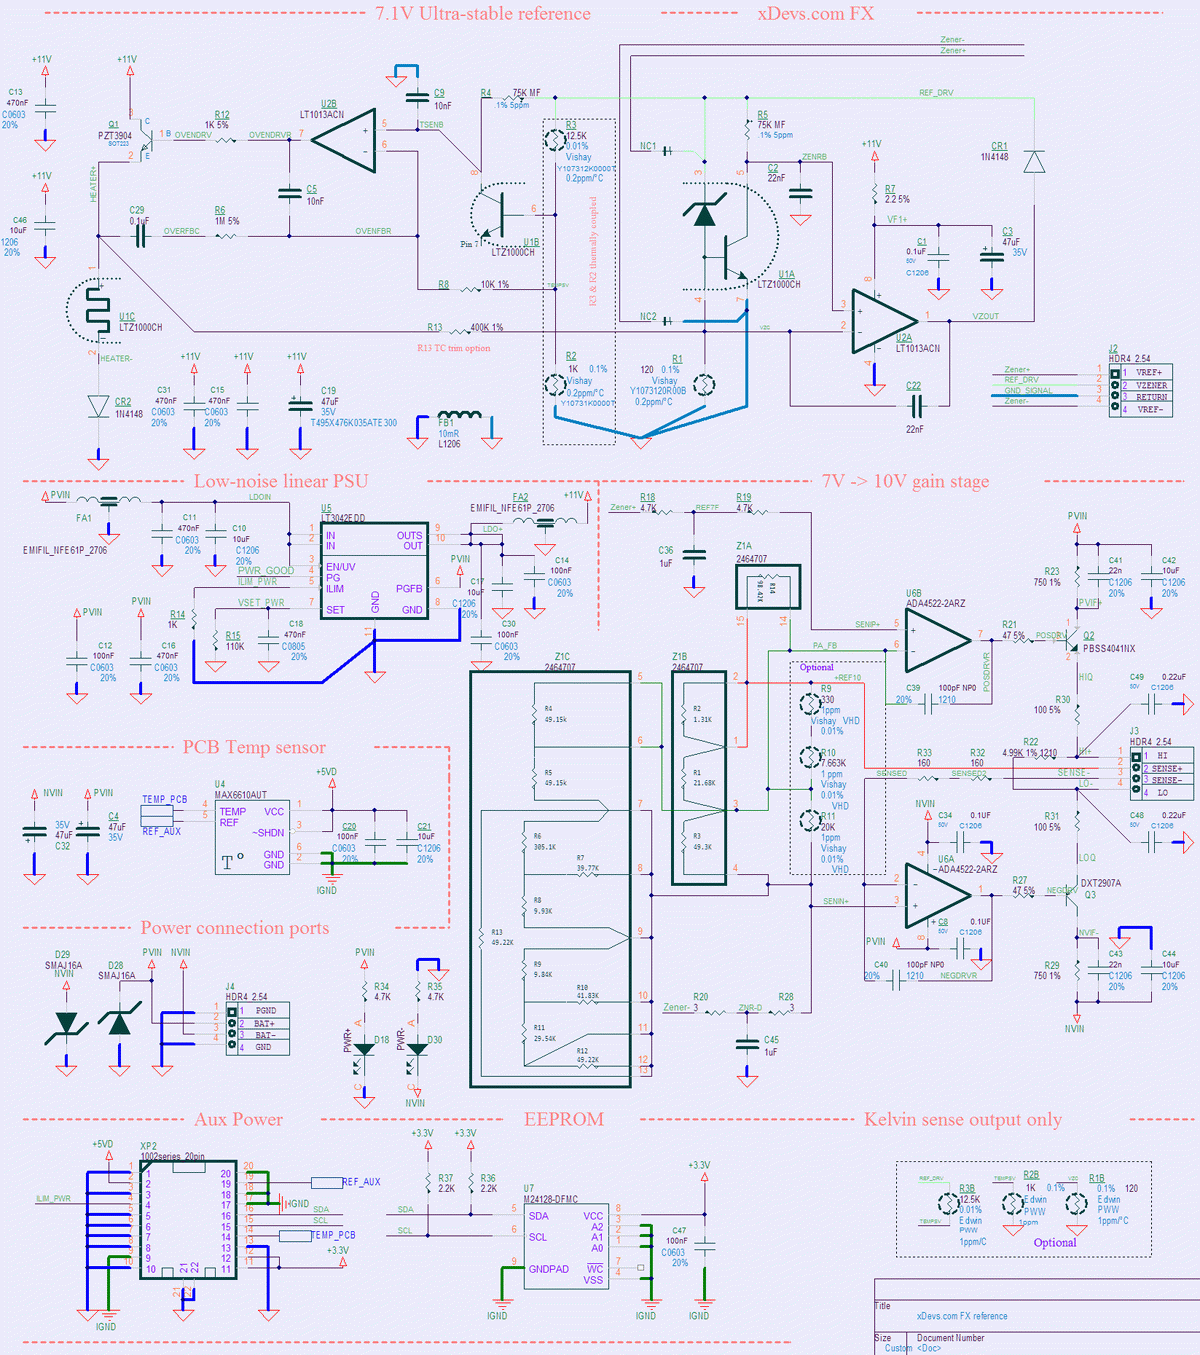 Project 792x 10v Fx Reference And Fluke 792a Support 2n2907 In The Reverse Unit Schematic Circuit Diagram Datasheet Image 2 Dc Voltage Schematics